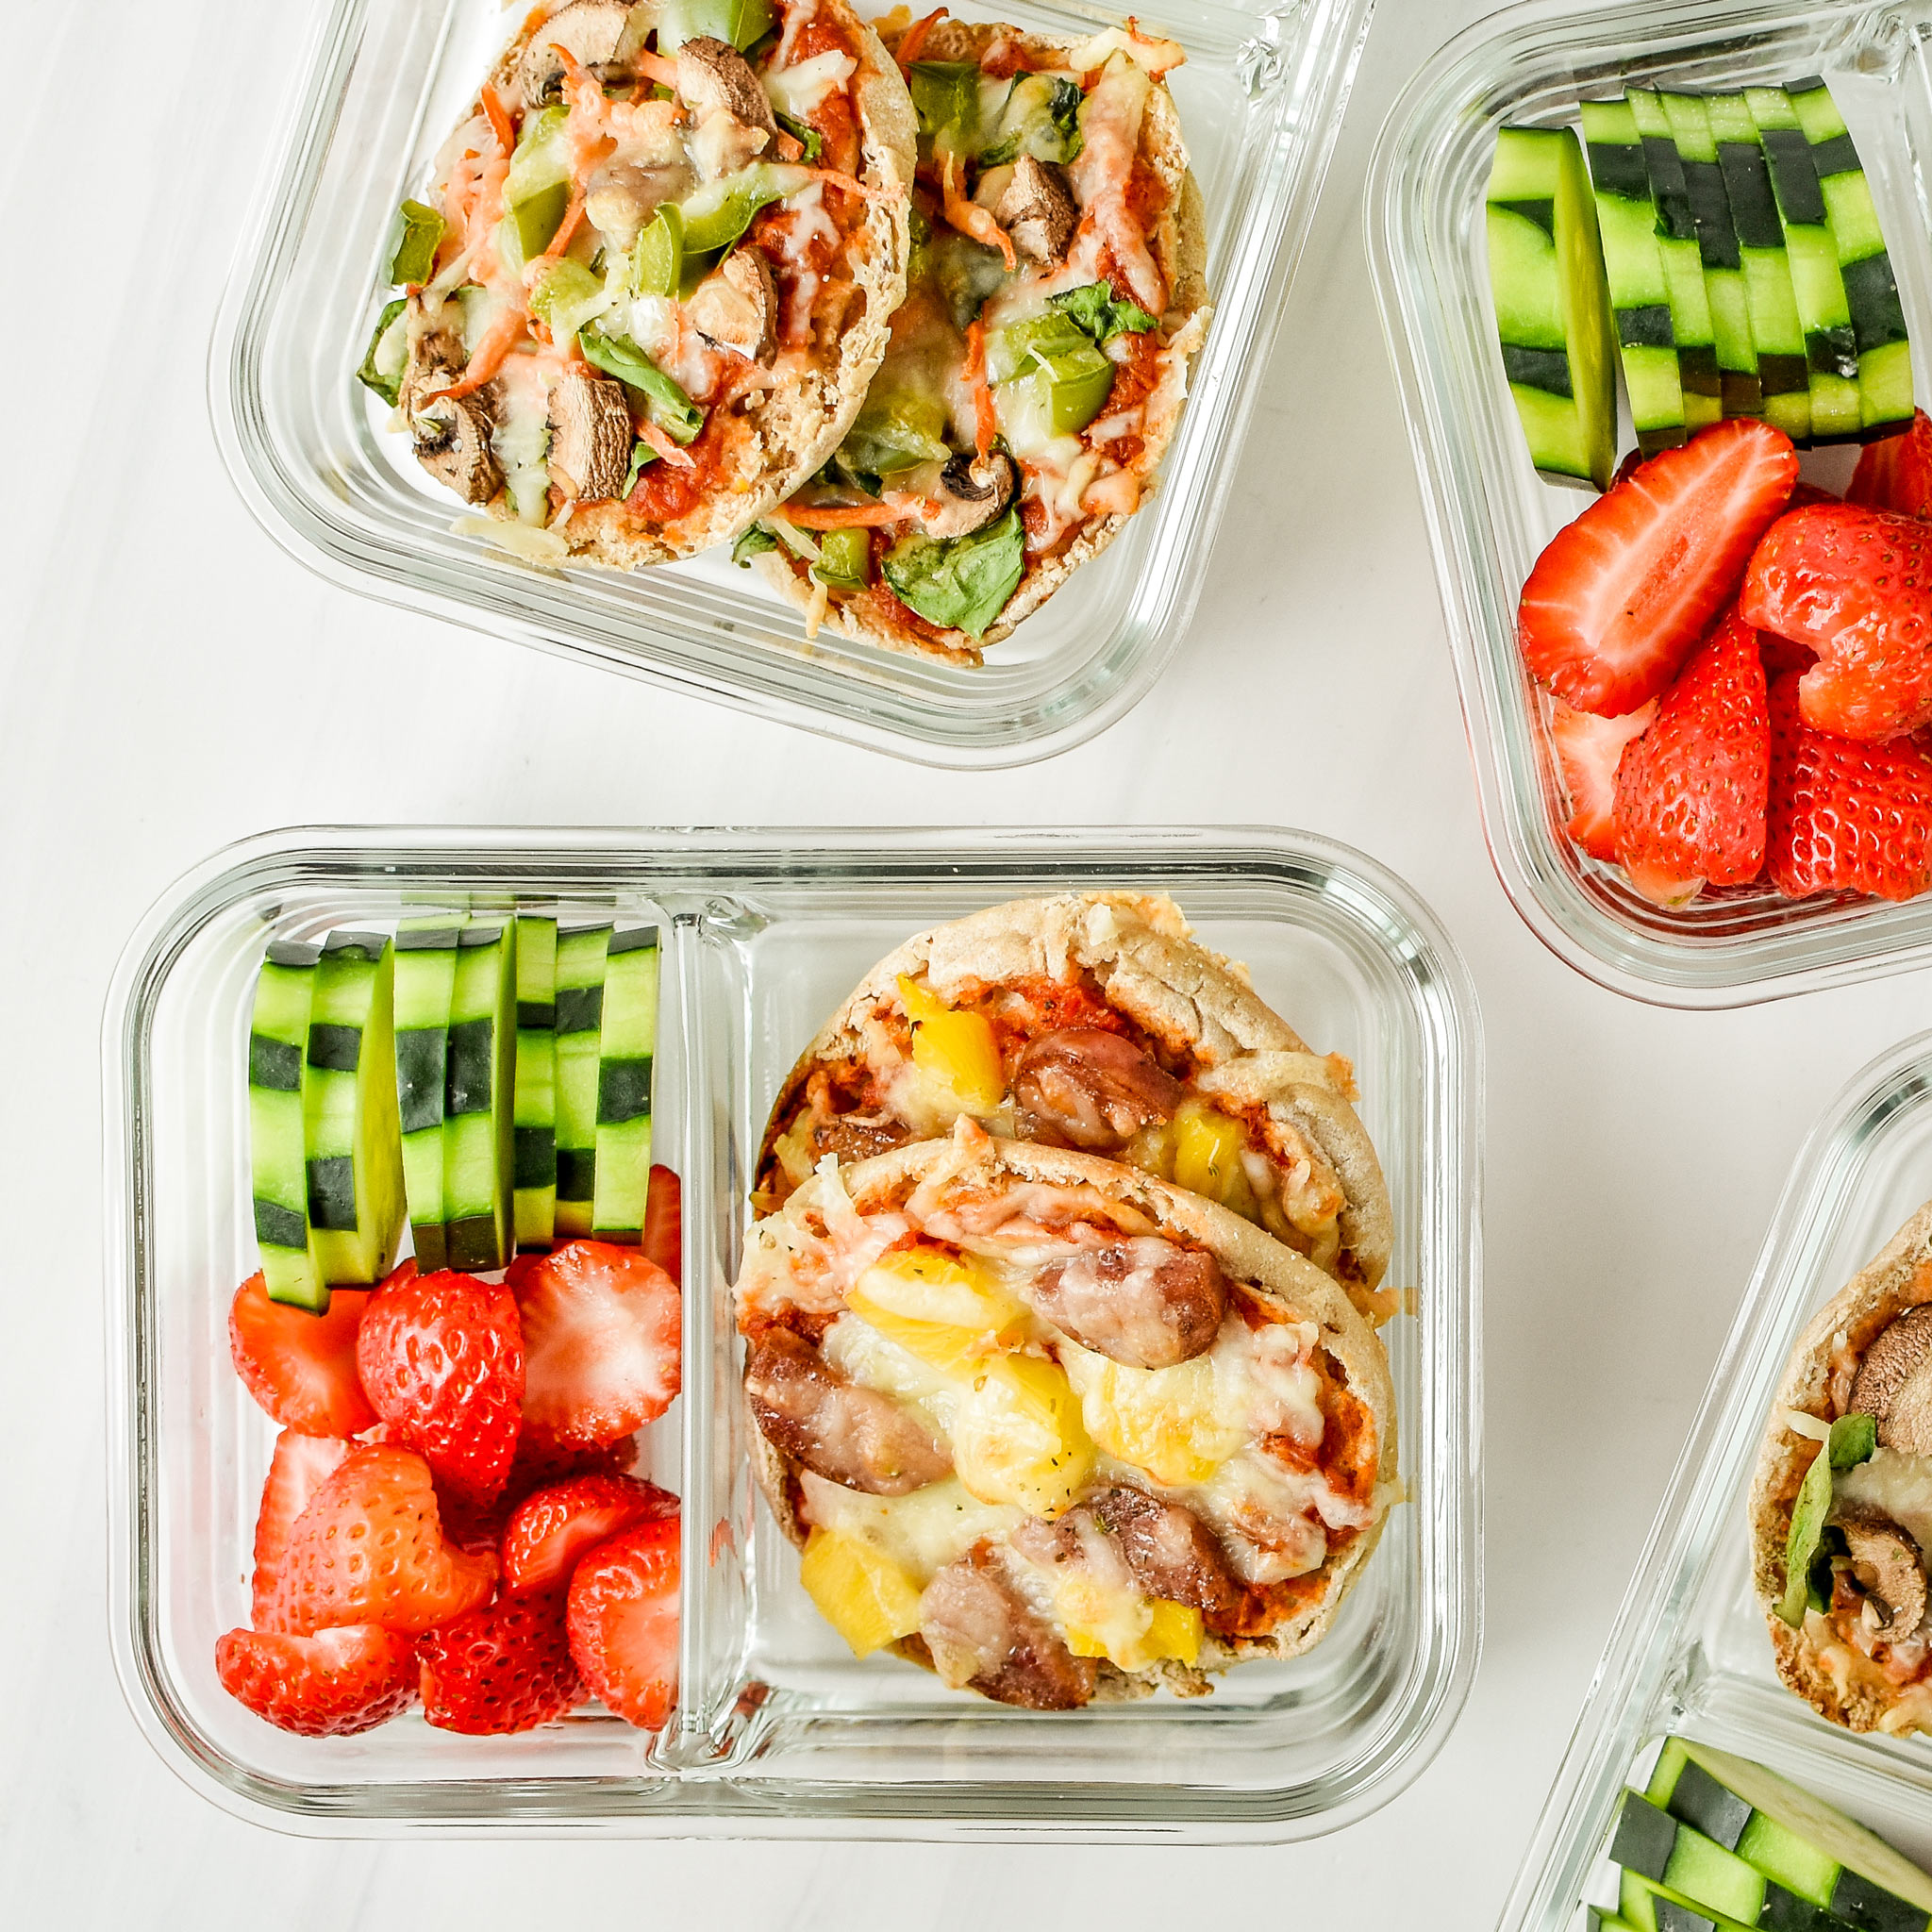 English muffin mini pizzas meal prep pictured from above in a meal prep container with fresh fruits and veggies.